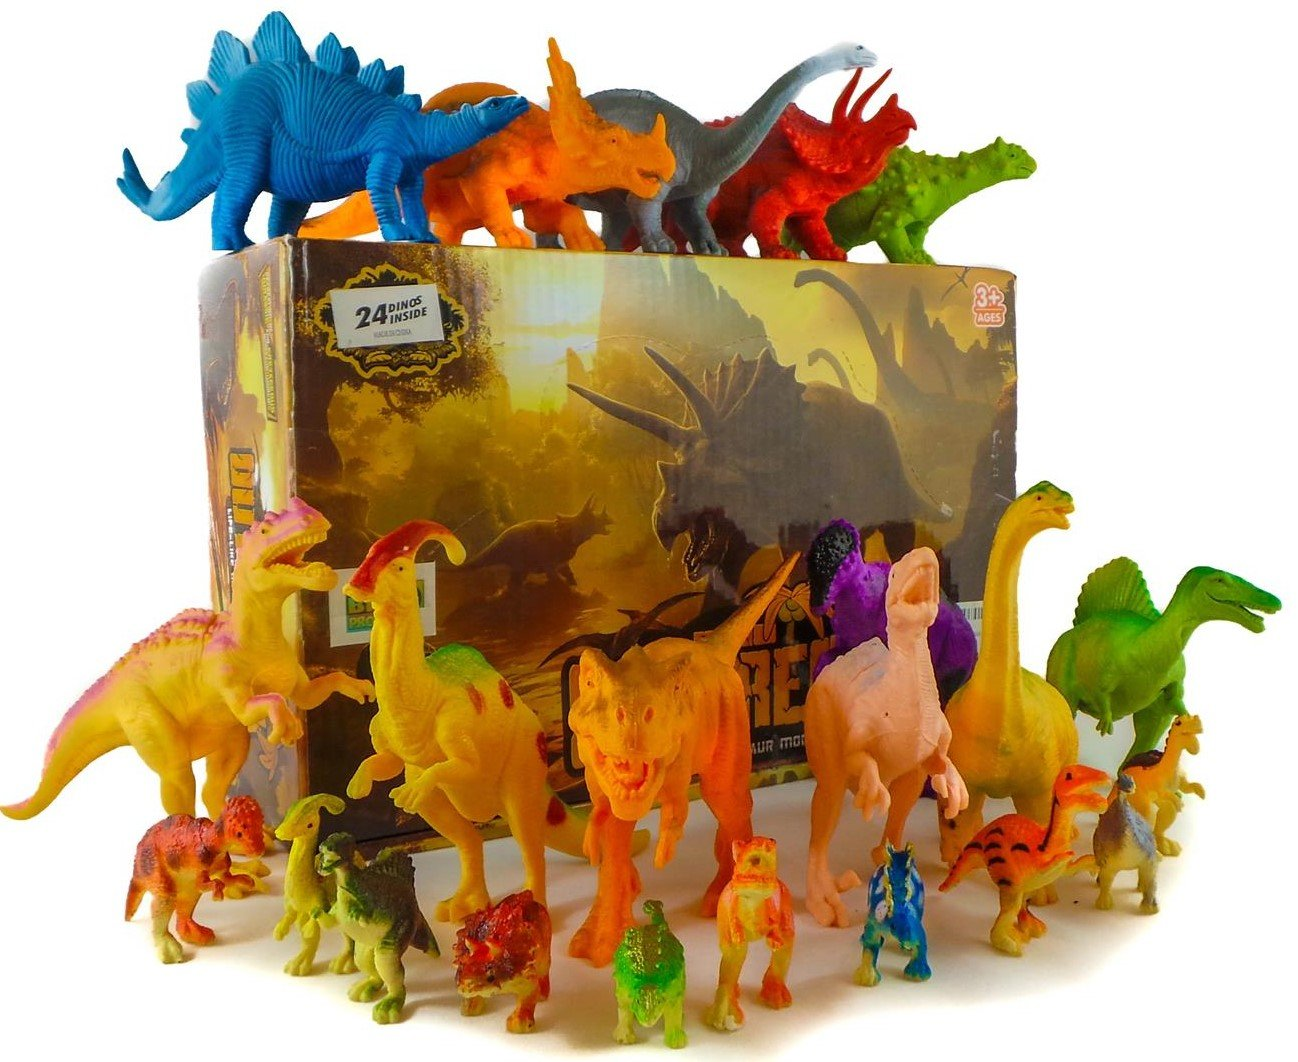 24 Jurassic Dinosaur Toys For 3, 4, 5, 6, 7 year old Boys Girls Toddlers Kids - Party Favors & Supplies- Plastic Action Figures for Bath Toys, Pool Toys & Pretend Play - STEM Learning Dino Set Big-D Productz